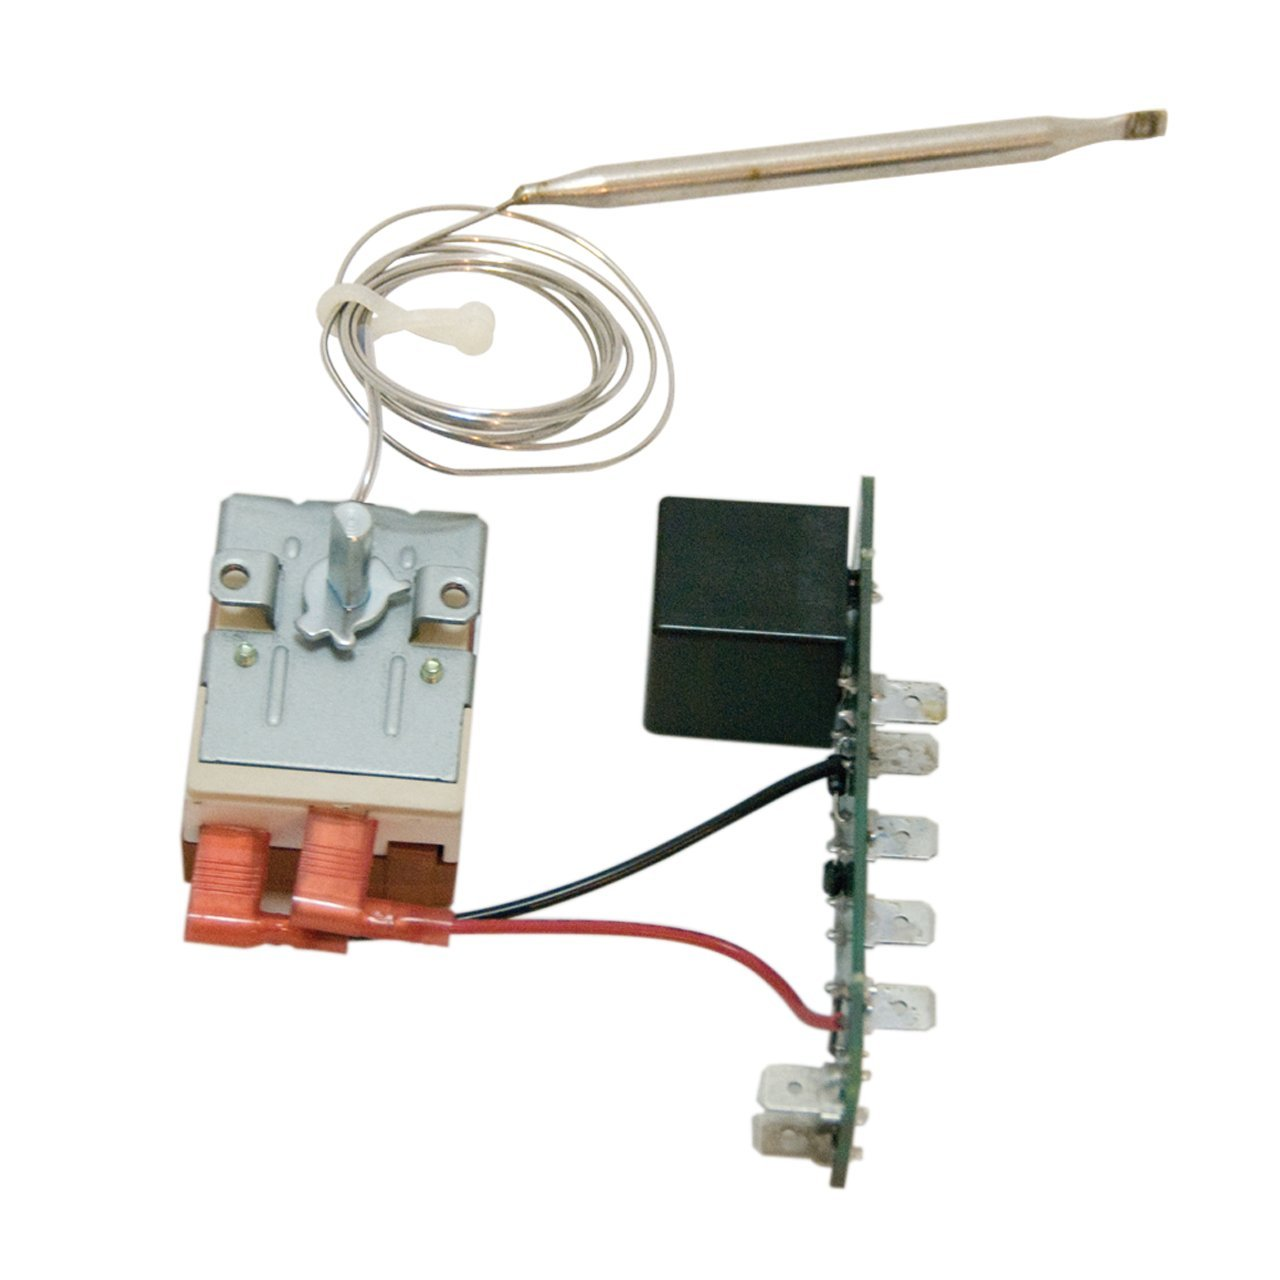 30332 Flex A Lite Cooling Fan Control Module 30 Amp Rating How To Wire Your Electric Controller Wiring 33021 25